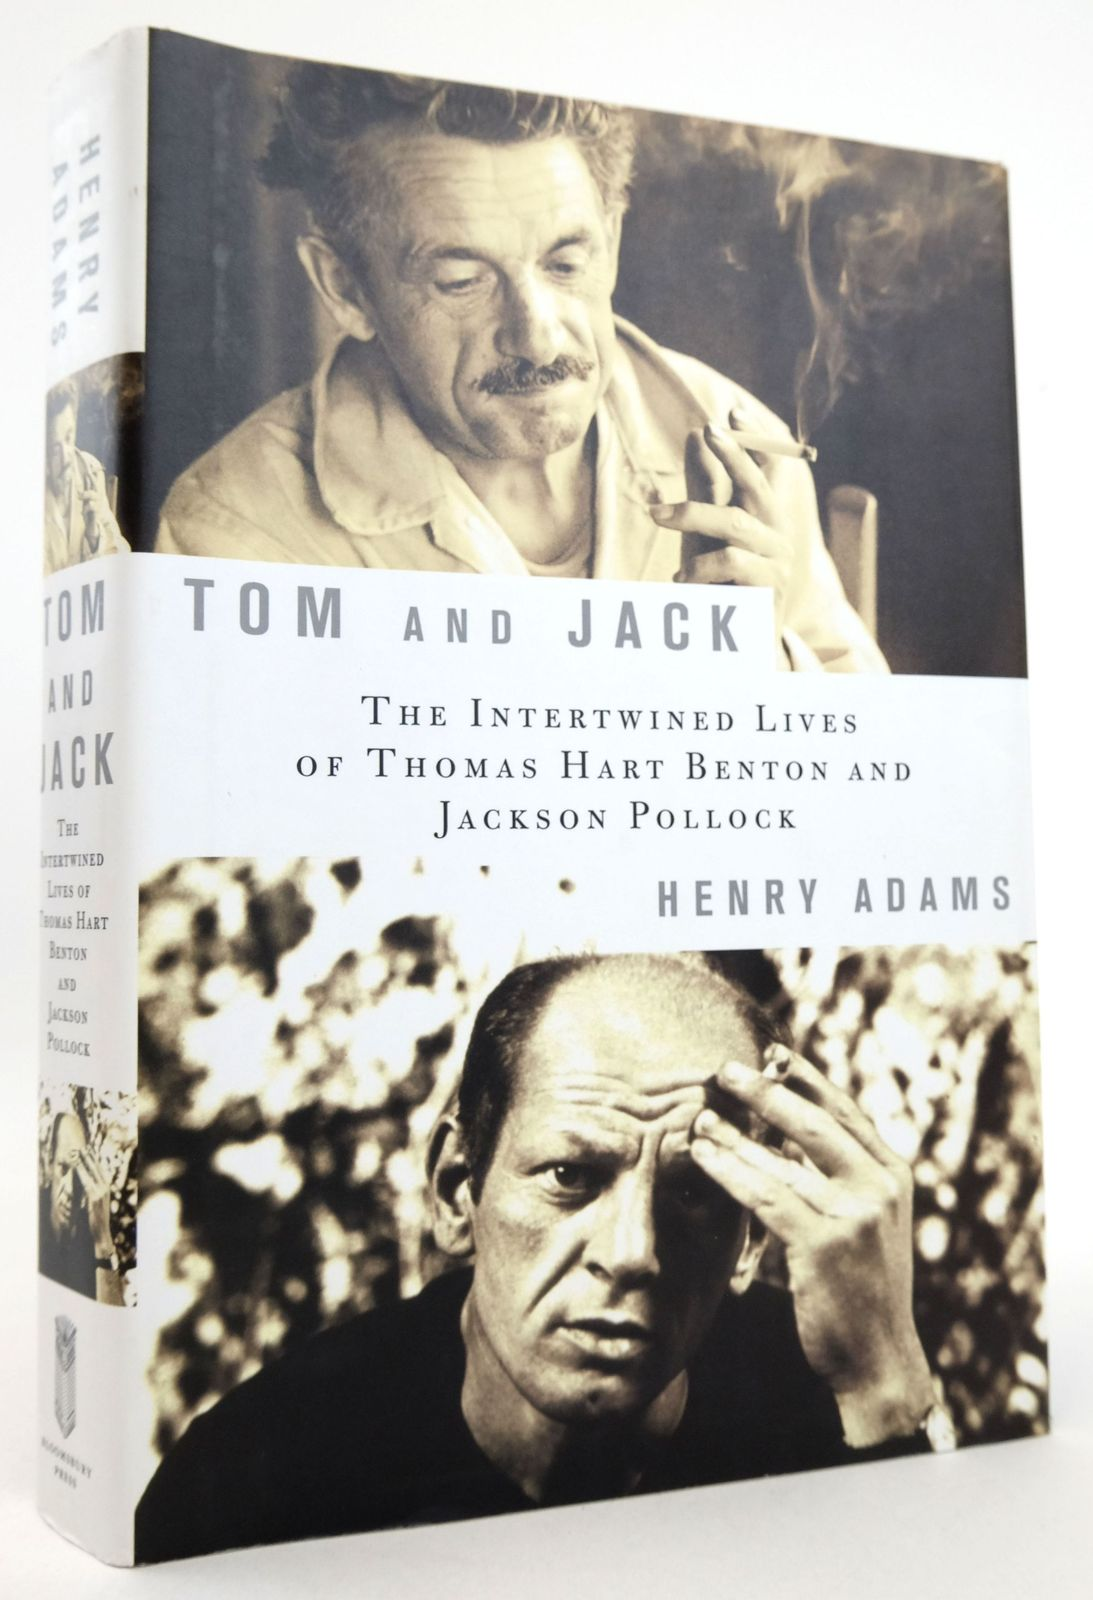 Photo of TOM AND JACK written by Adams, Henry published by Bloomsbury Press (STOCK CODE: 1819300)  for sale by Stella & Rose's Books